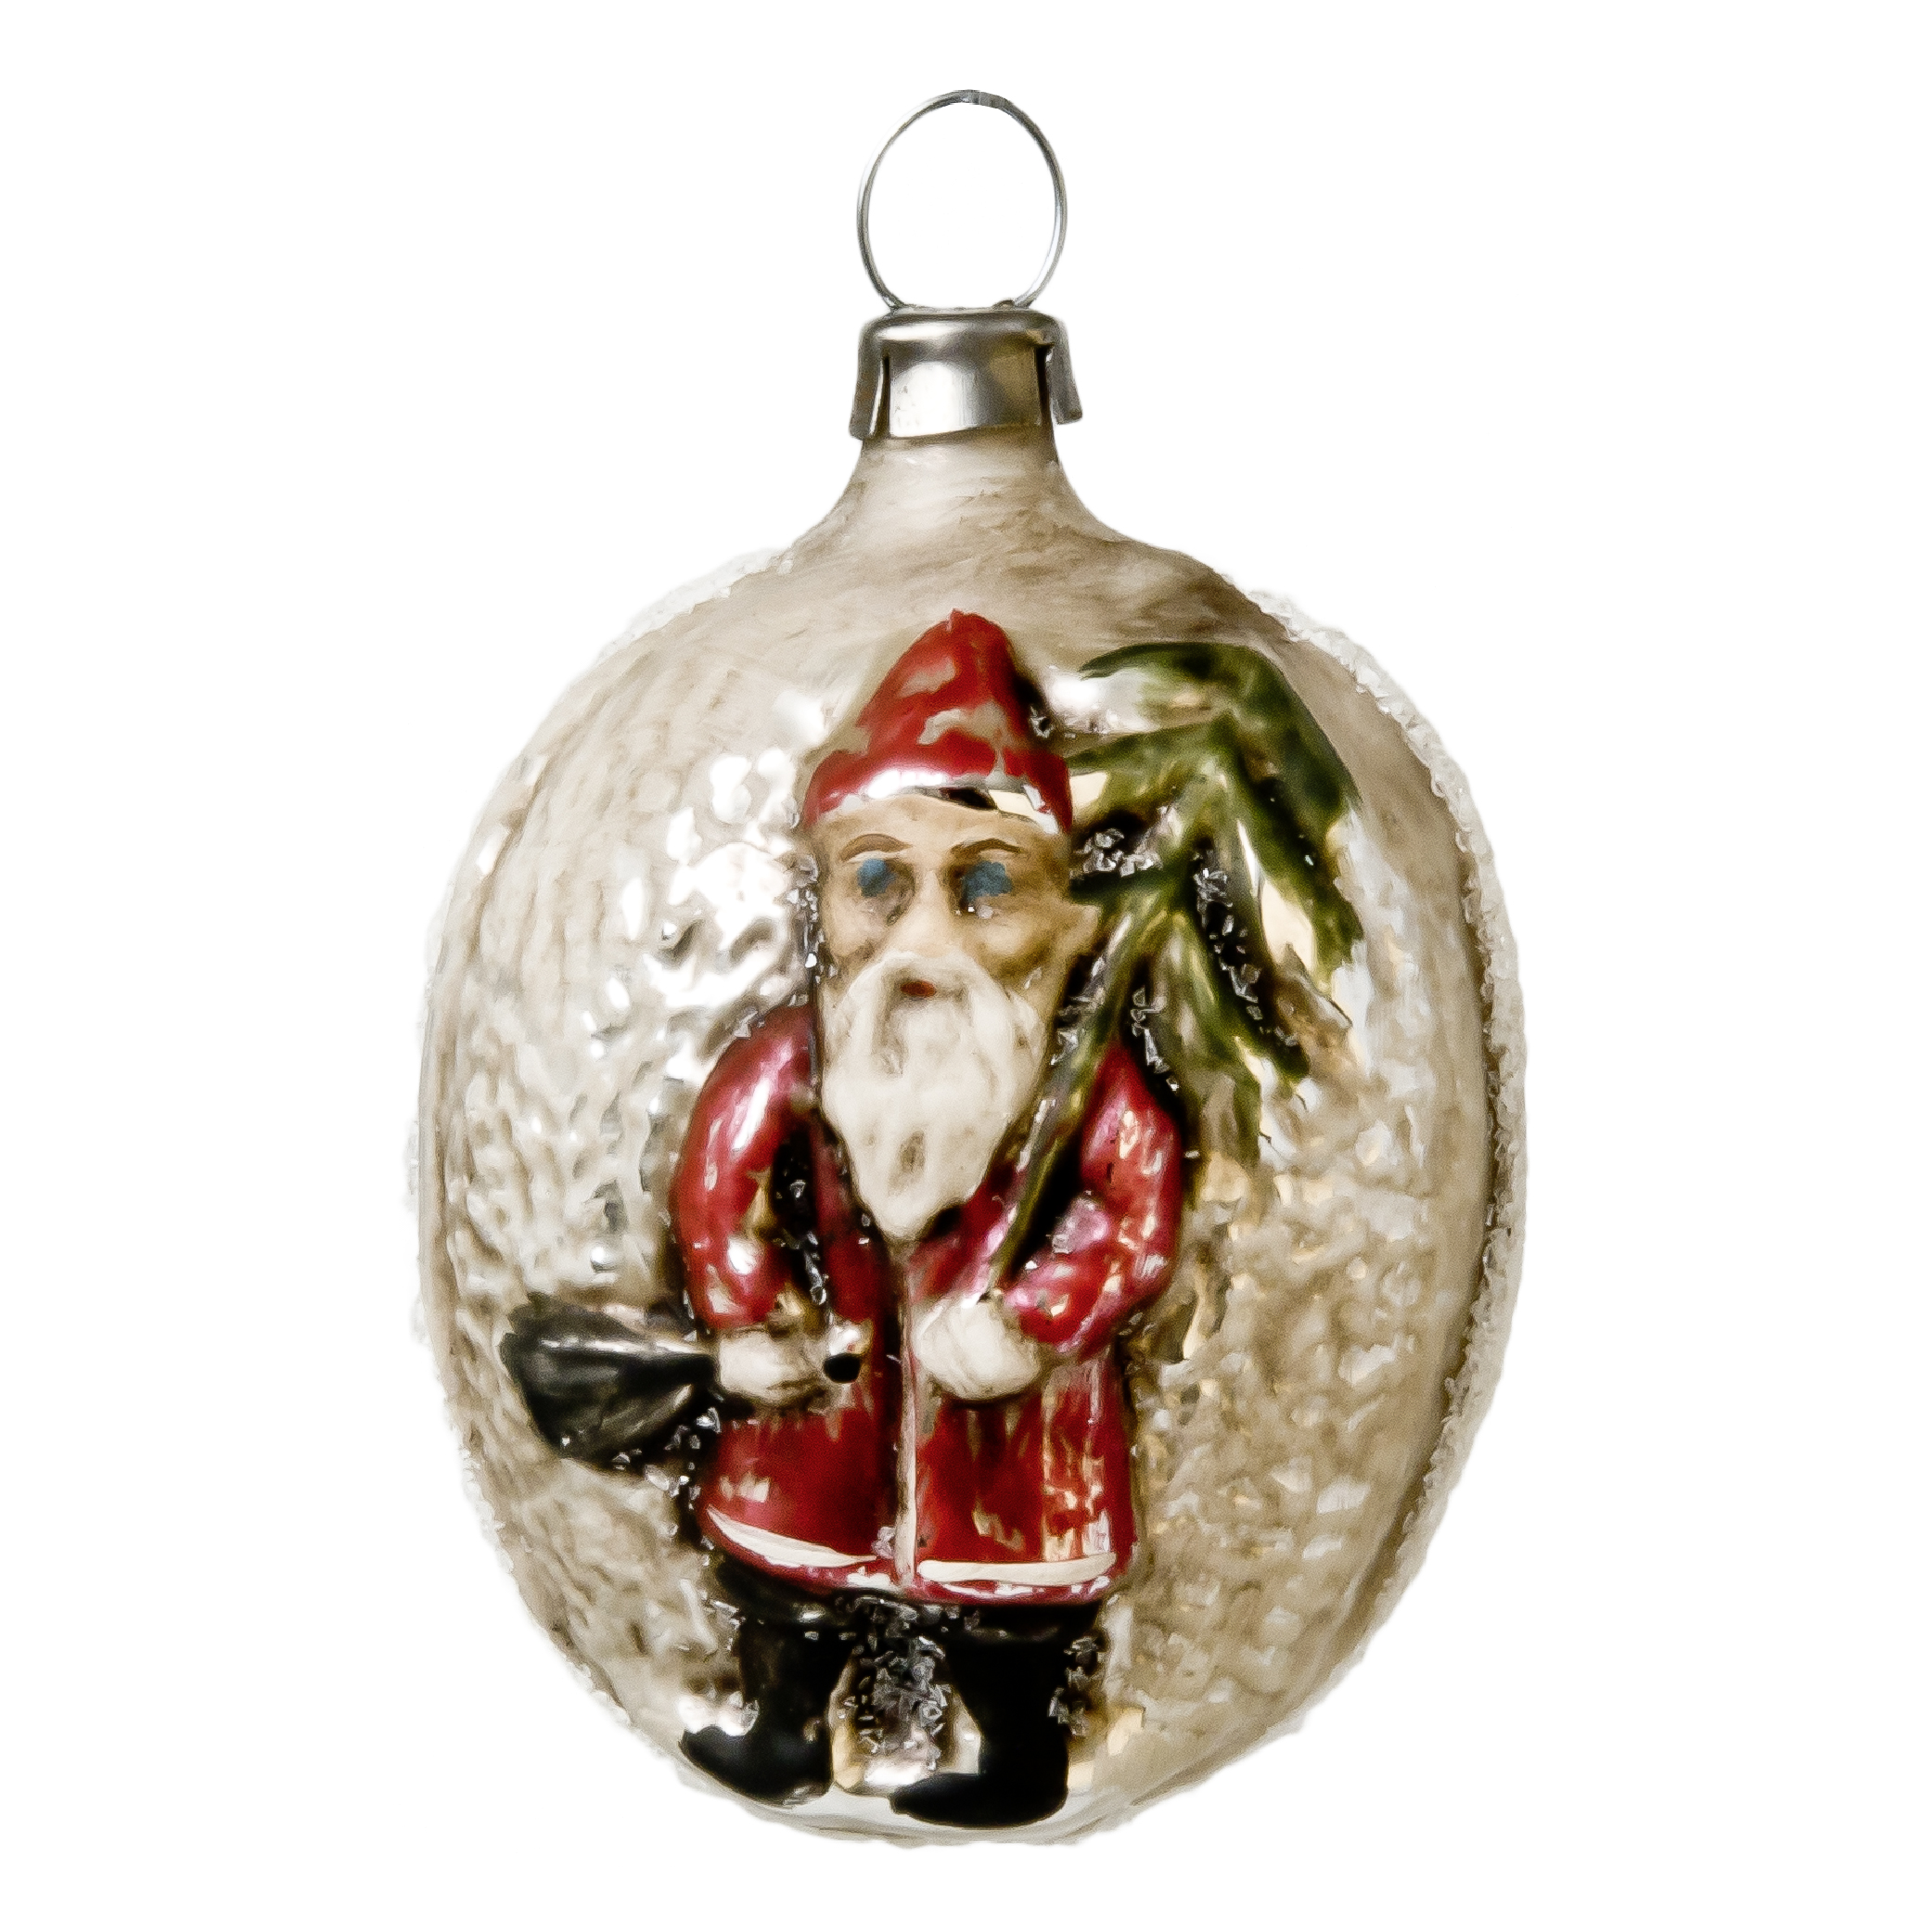 Over the moon with my vintage christmas glass ornament haul